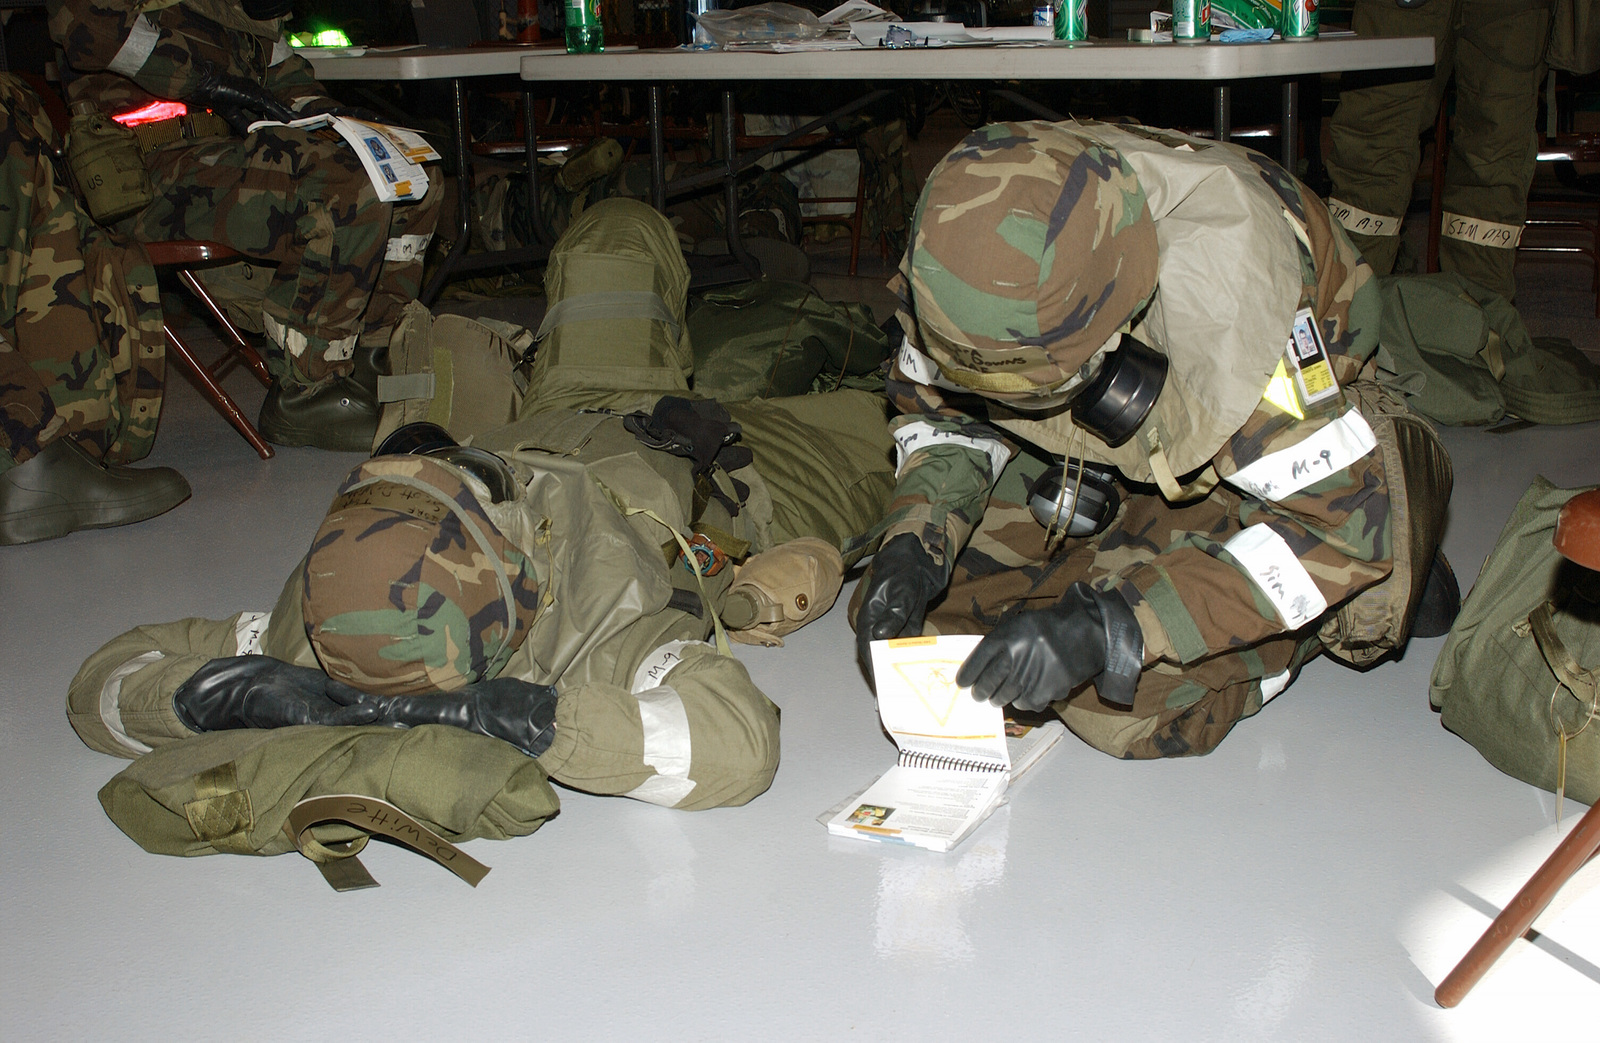 South Dakota Air National Guard TECH. SGT. Chris Novak (right) consults the manual about the proper procedure to administer an atropine injection to TECH. SGT. Scott DeWitt (left), both with Pod A, 114th Fighter Wing, during a simulated Mission-Oriented Protective Posture response level 4 (MOPP-4) gear exercise on Oct. 2, 2004, during an Operation Readiness Exercise being conducted at Joe Foss Field in Sioux Falls, S.D. (U.S. Air Force photo by MASTER SGT. Scott H. Leebens) (Released)